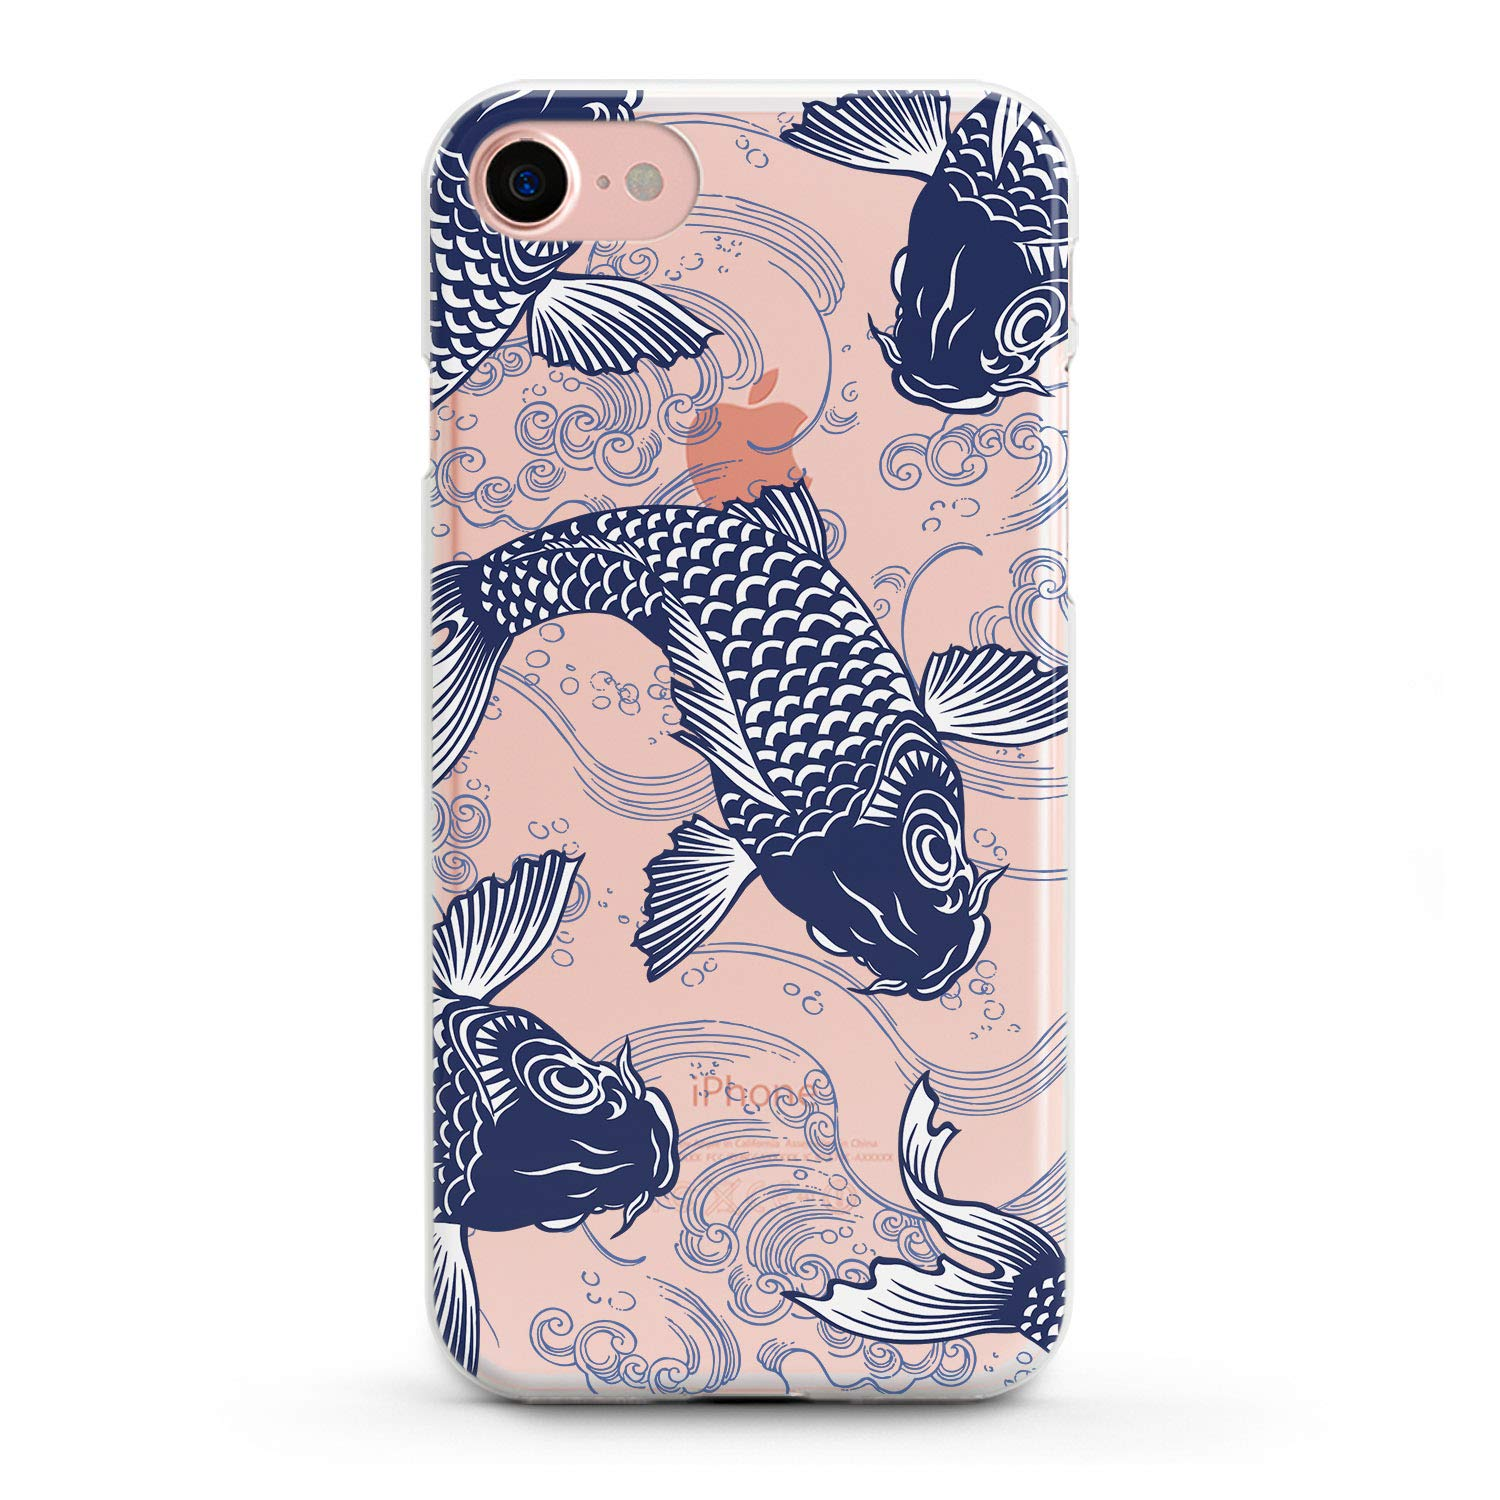 Lex Altern TPU iPhone Case X Max Xr 8 Plus 10 7 6s 6 SE 5s 5 Koi Fish Pattern Coi Cute Apple Phone Cover Silicone Blue Print Waves Protective Japanese Sea Girl Vintage Drawing Women Teen Clear Ocean